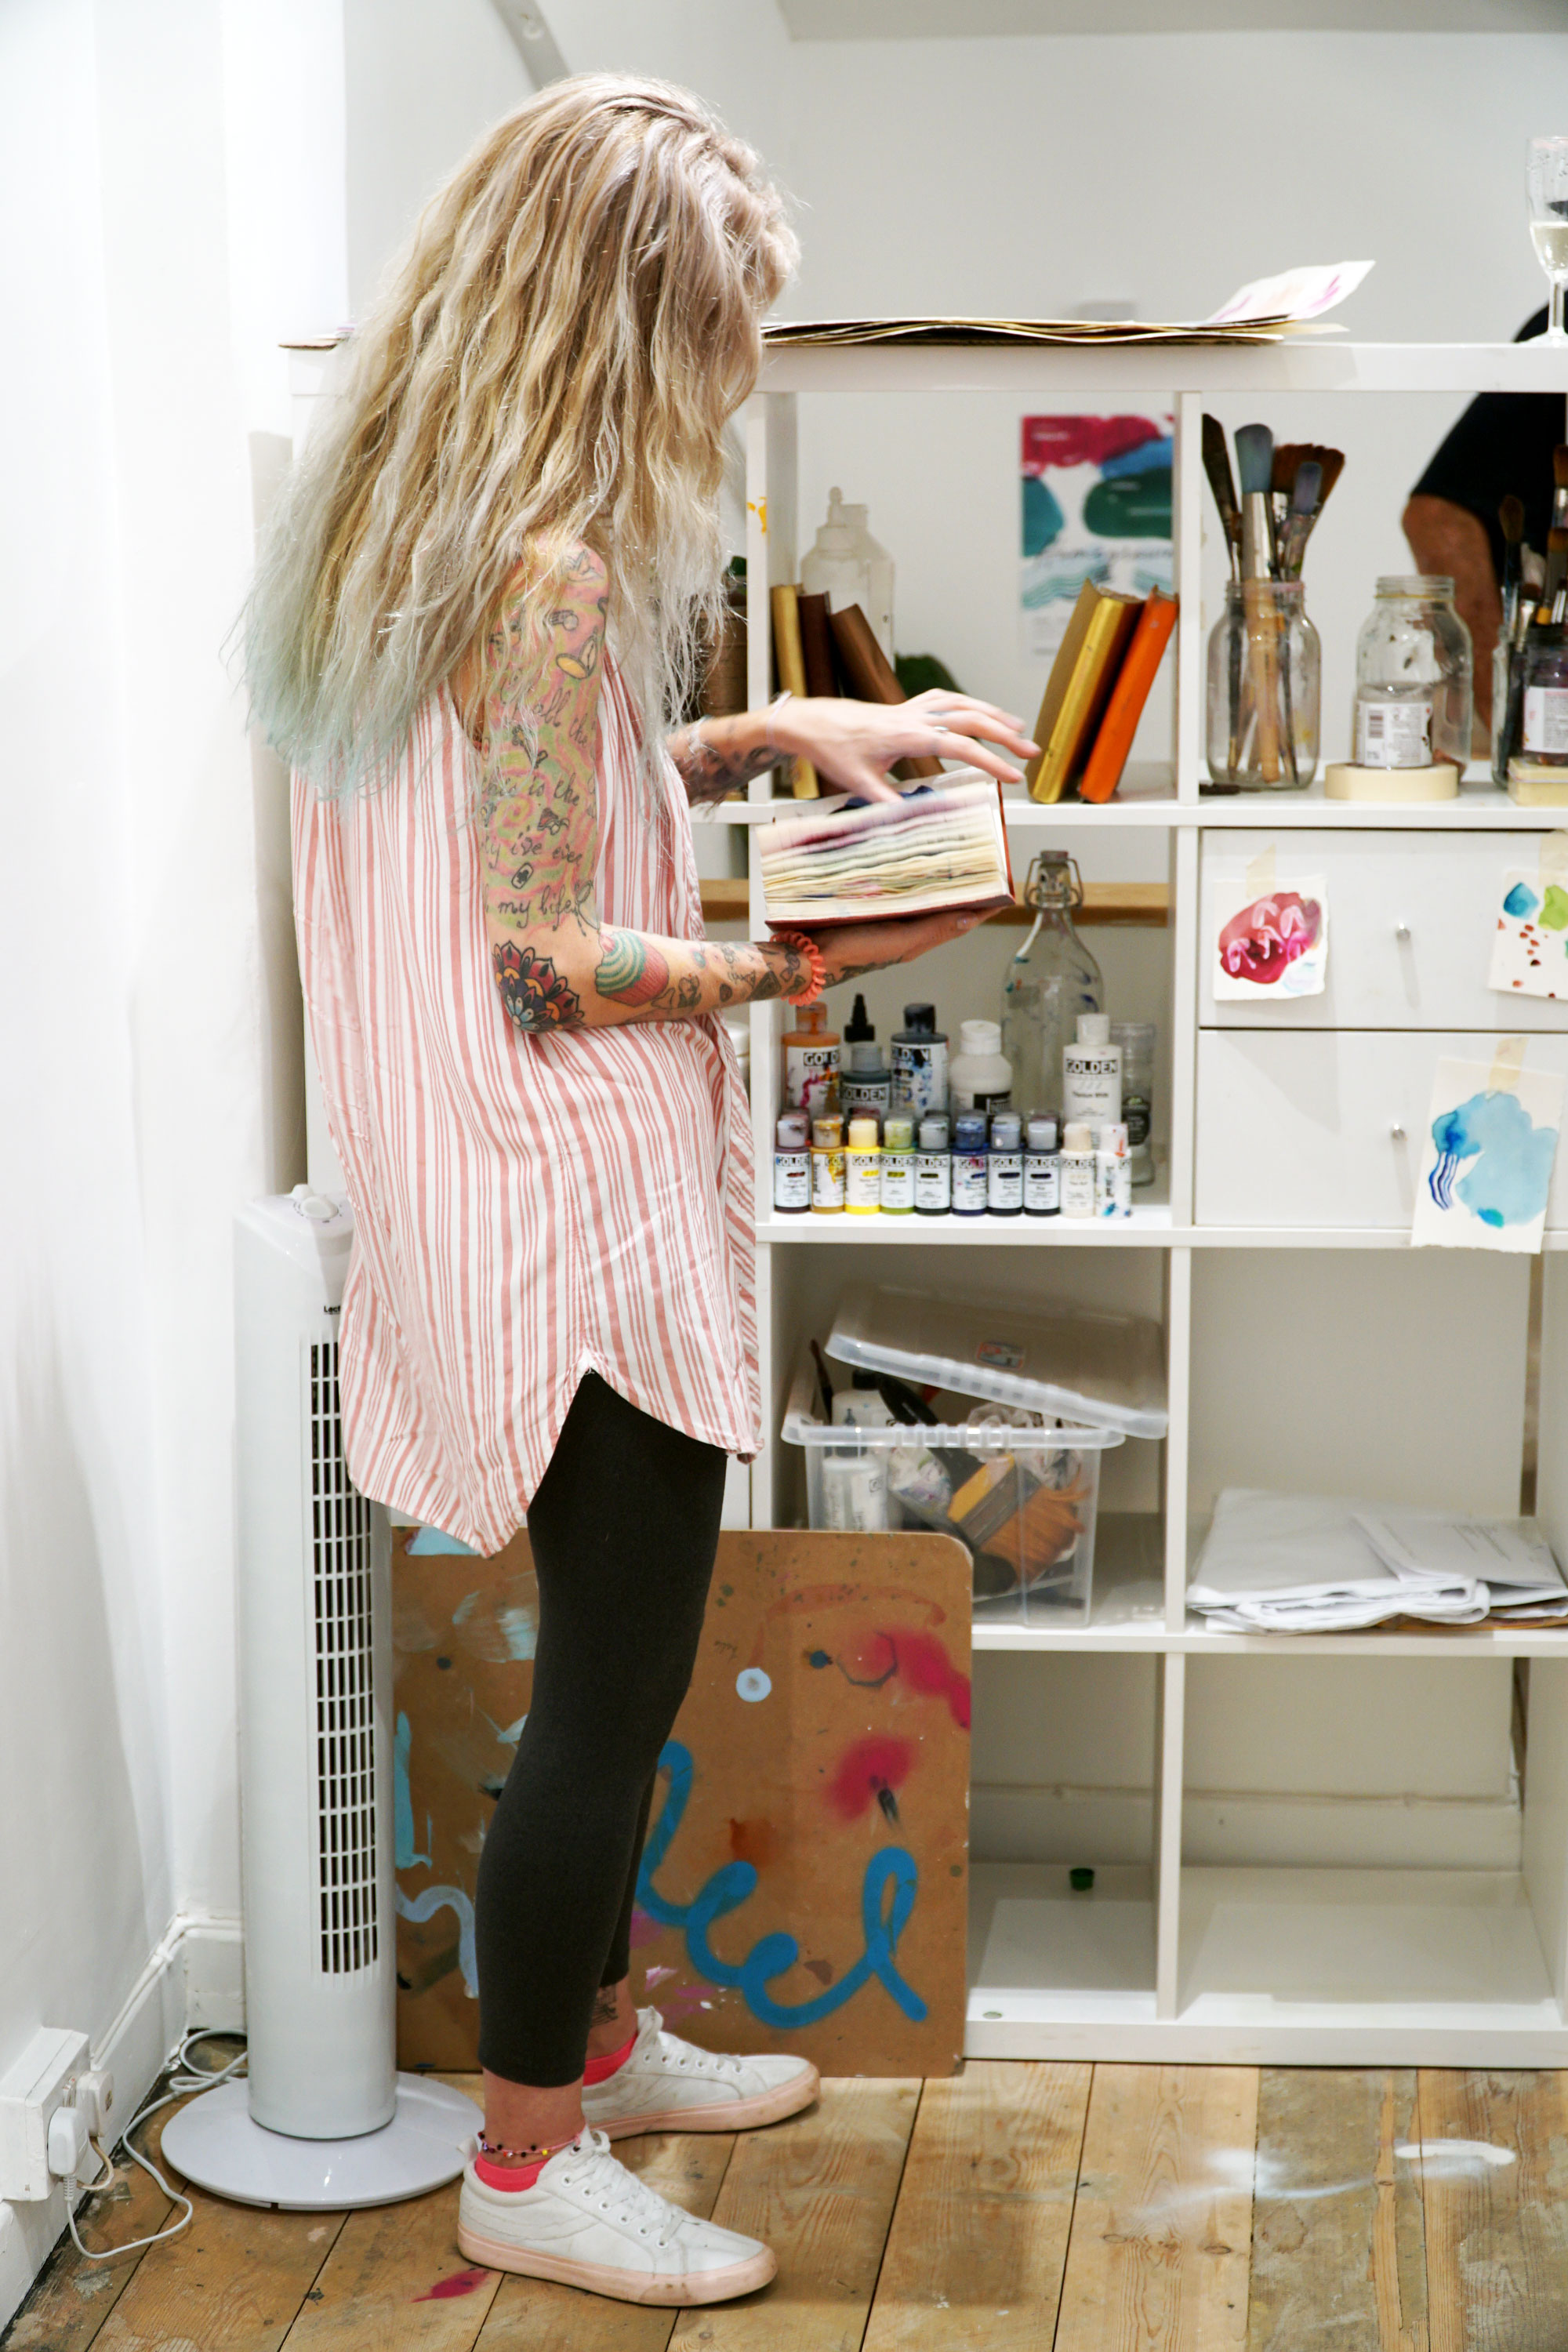 Heather-with-journals-in-studio